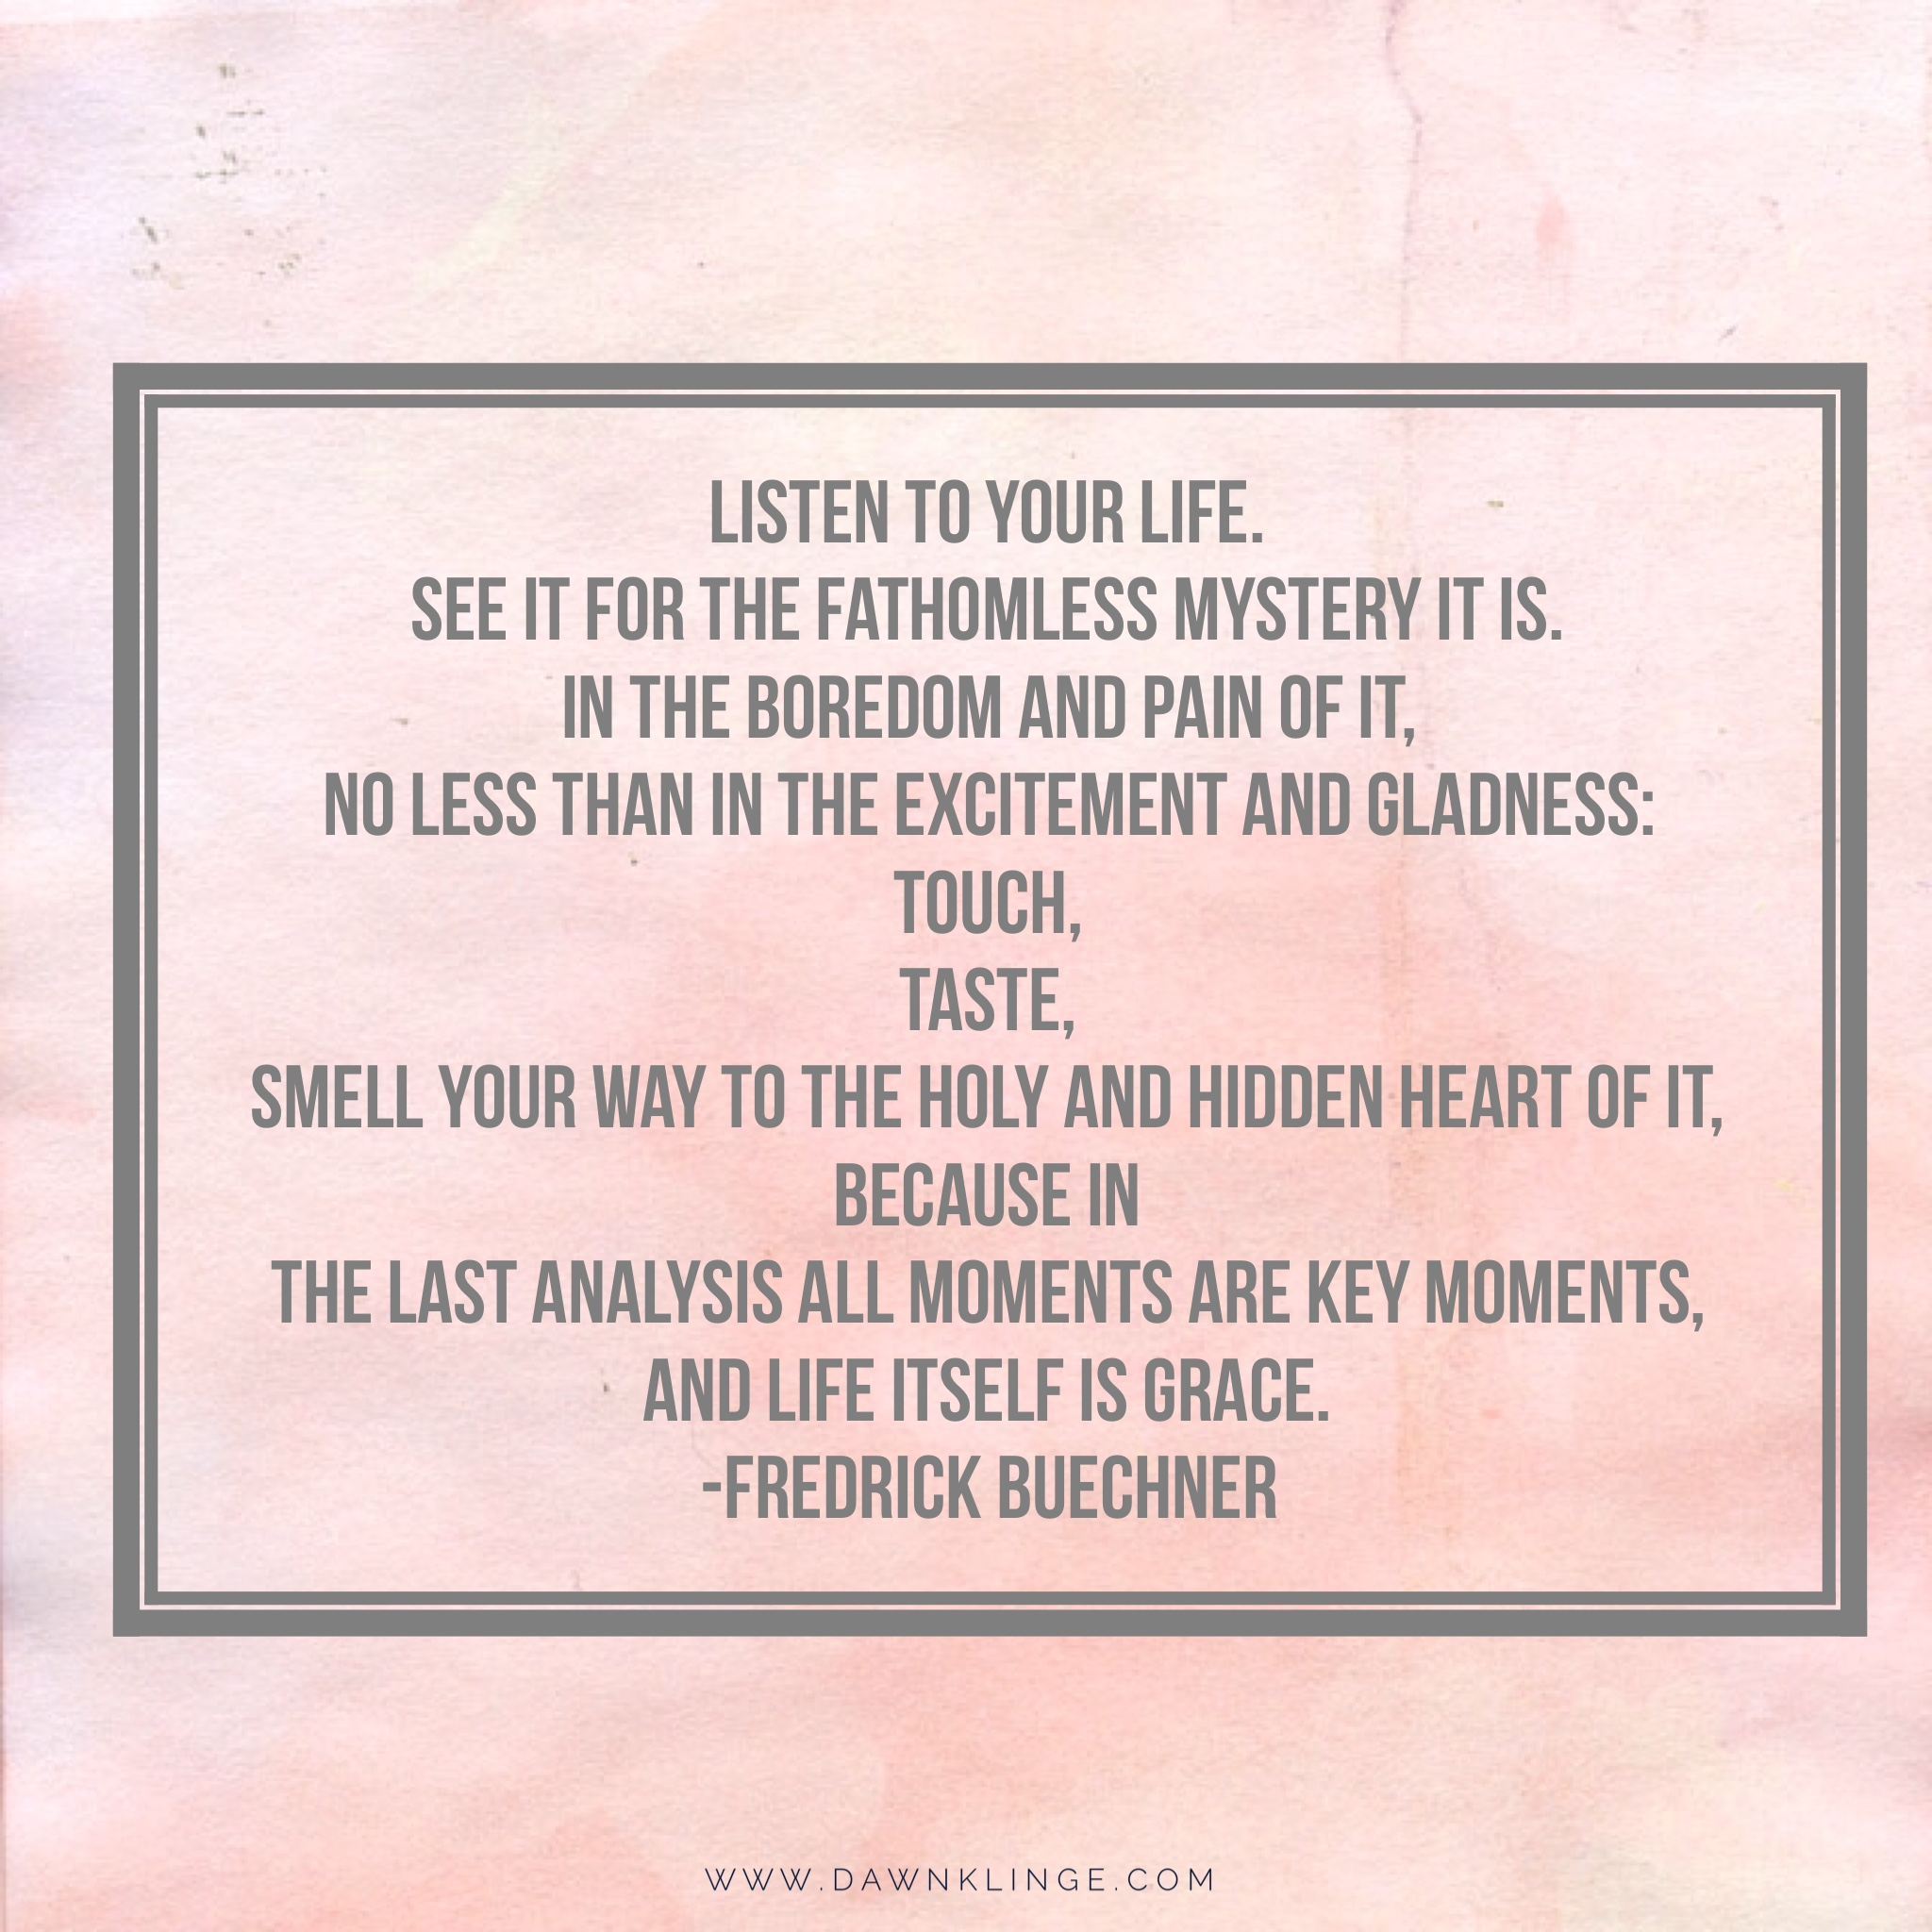 life itself is grace   frederick buechner   christian living   what is grace   Above the Waves    #fredrickbuechner